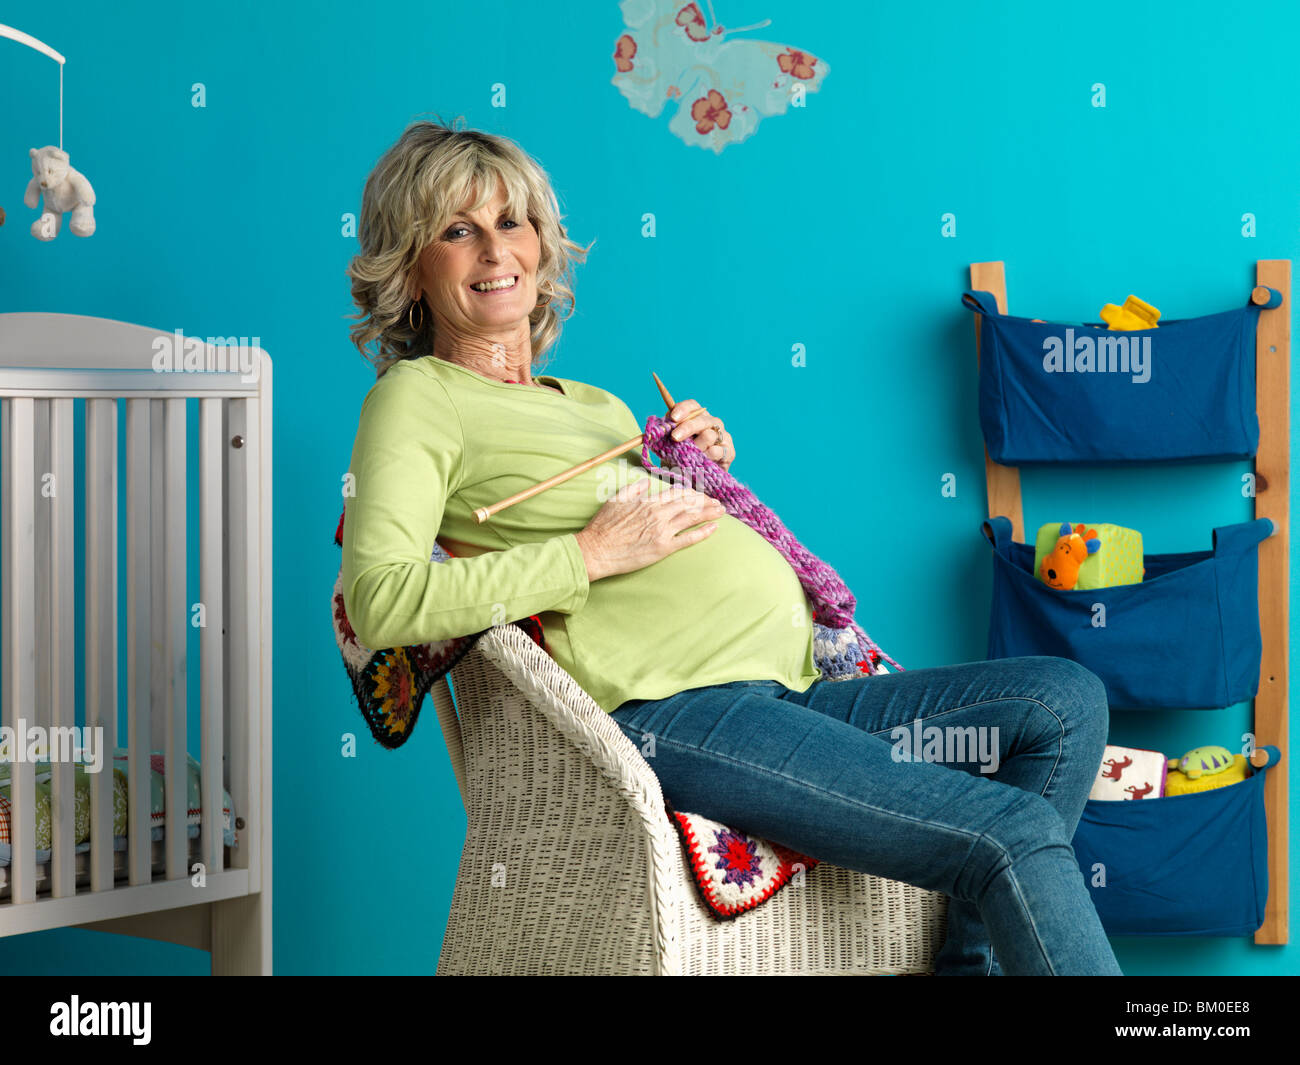 Pregnant mature woman knitting - Stock Image